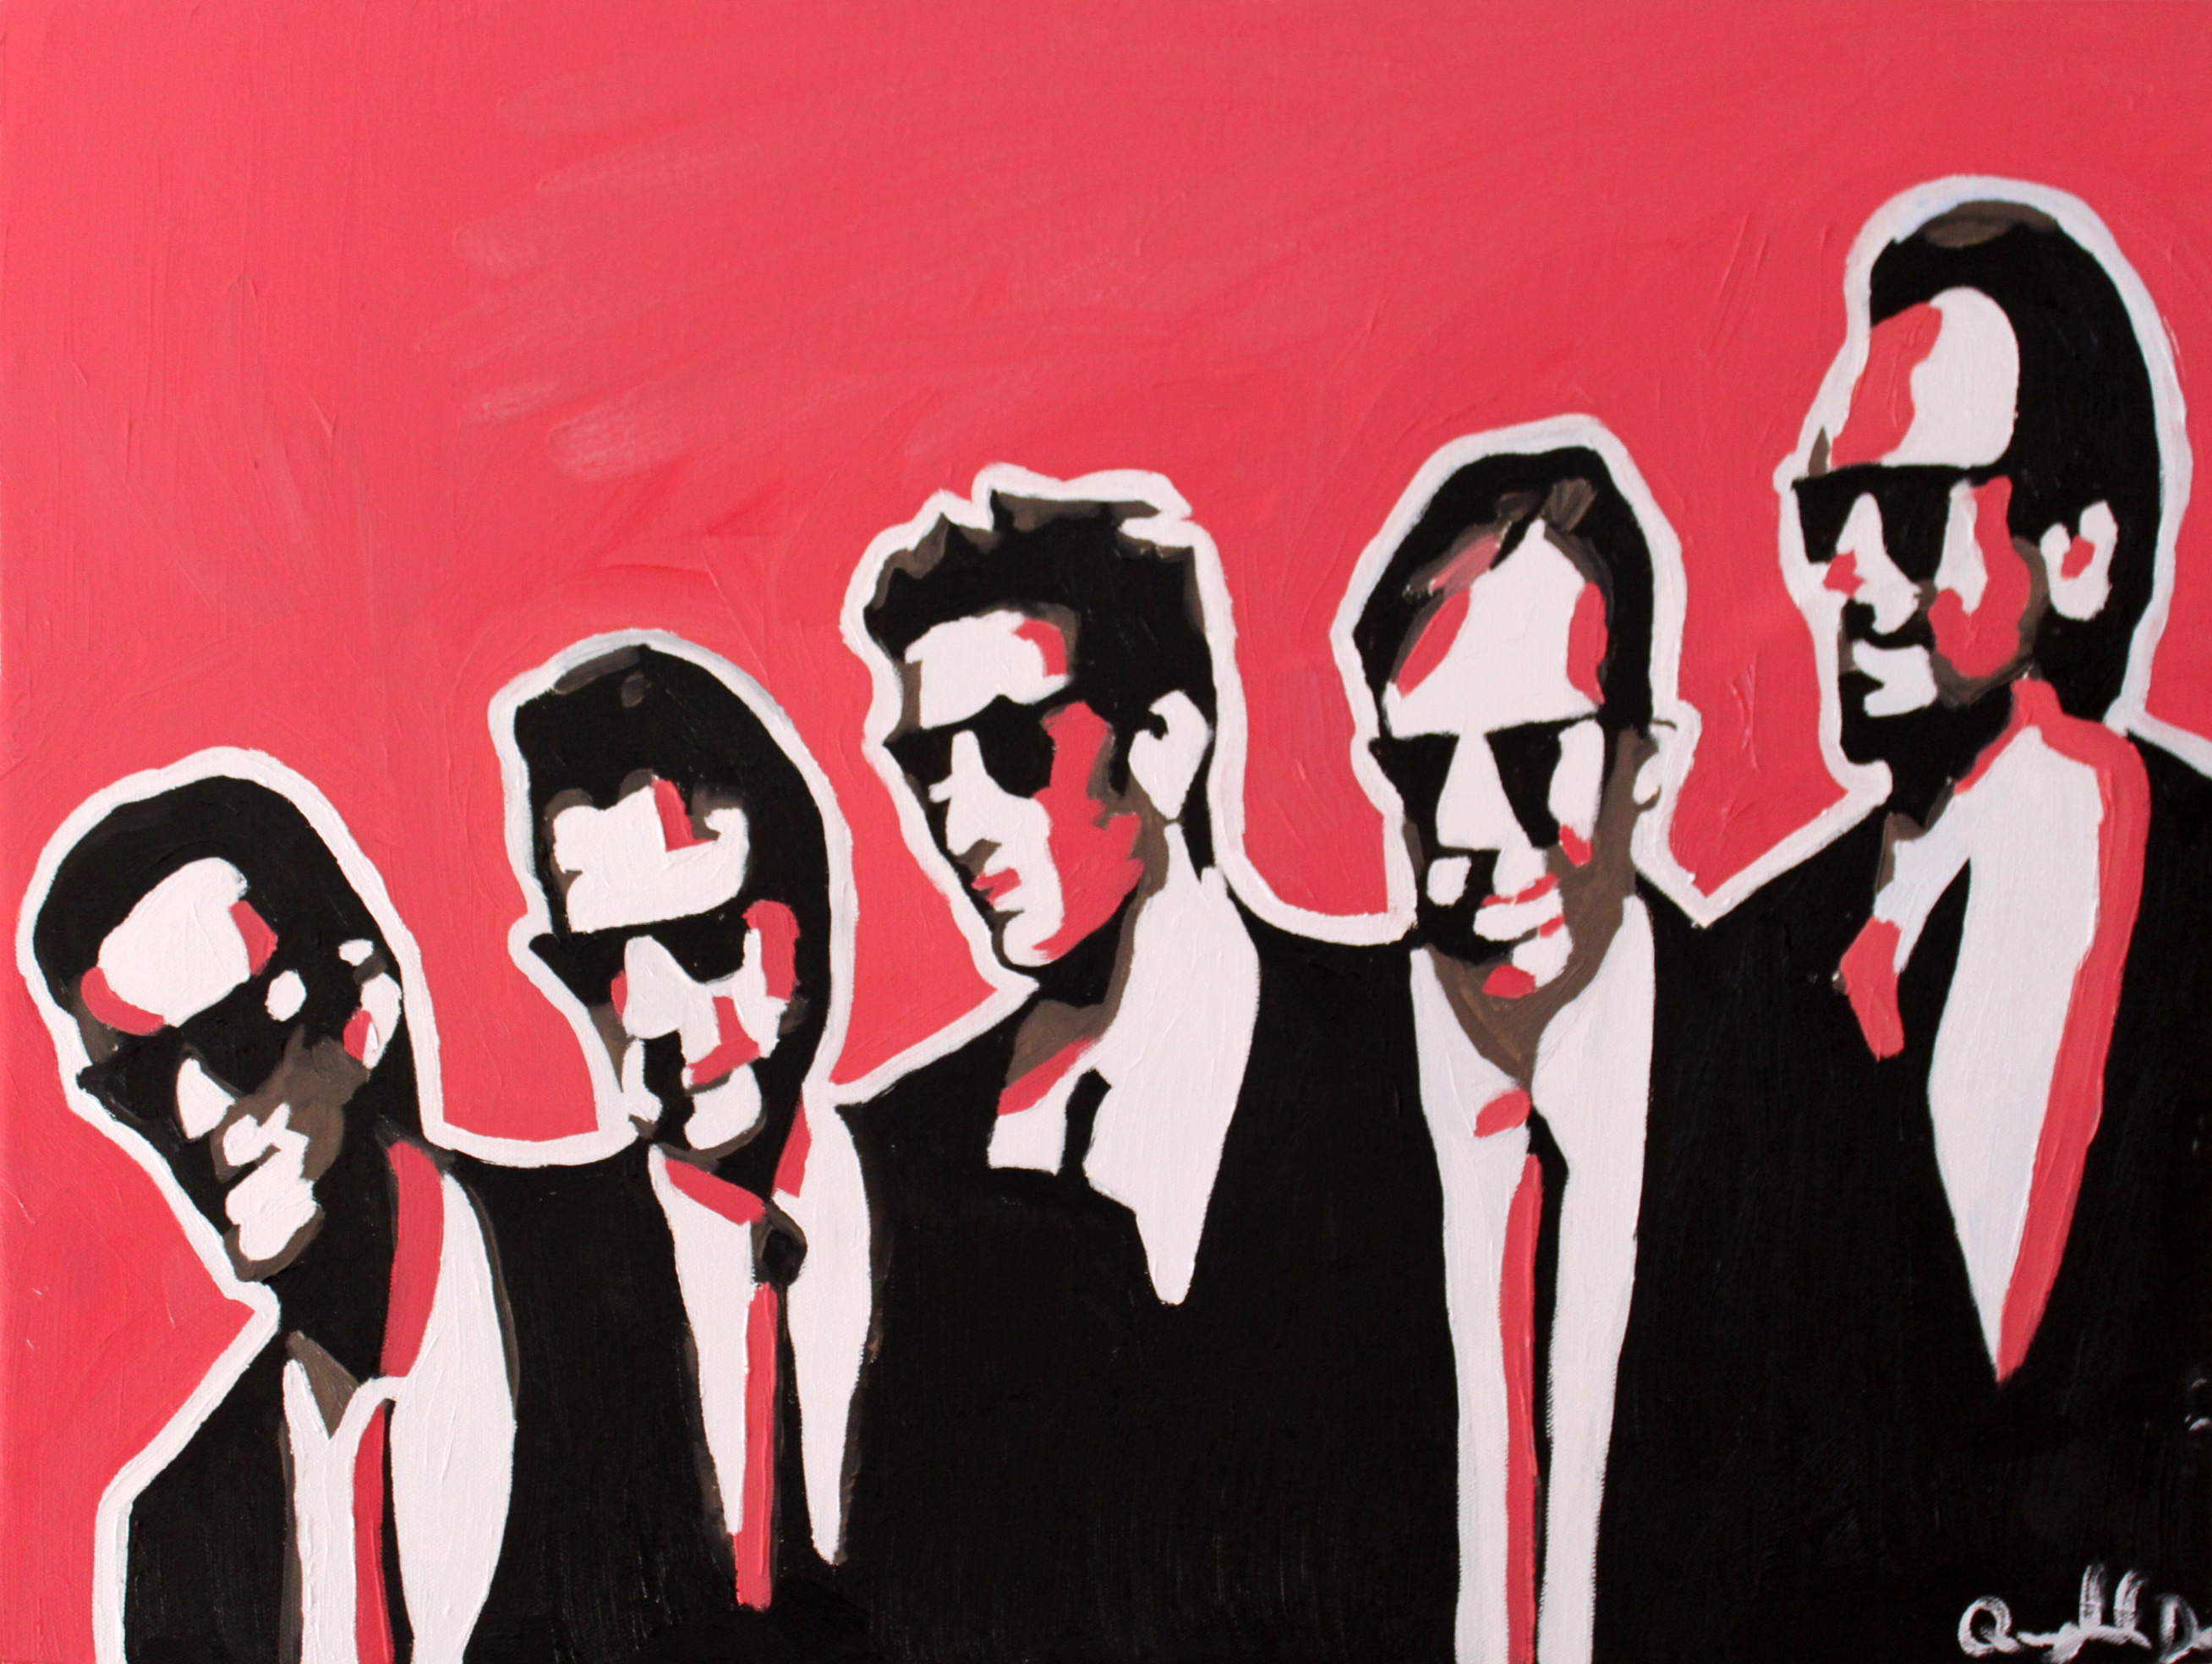 """Pink Reservoir Dogs,"" Quyn Do, Oil on Canvas, 18x24."